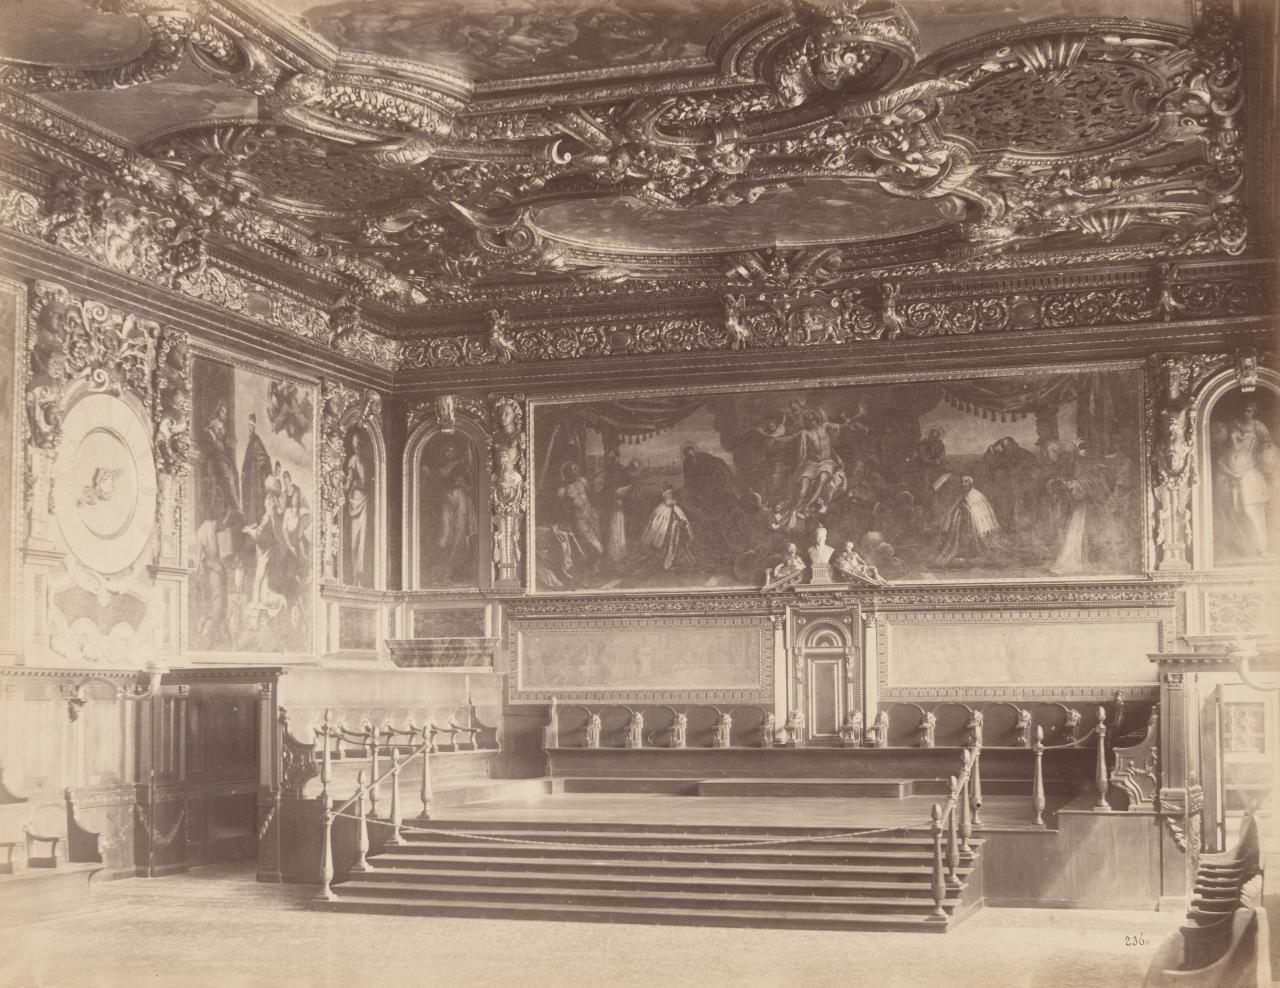 Interior of the Council Chamber, Ducal Palace, Venice